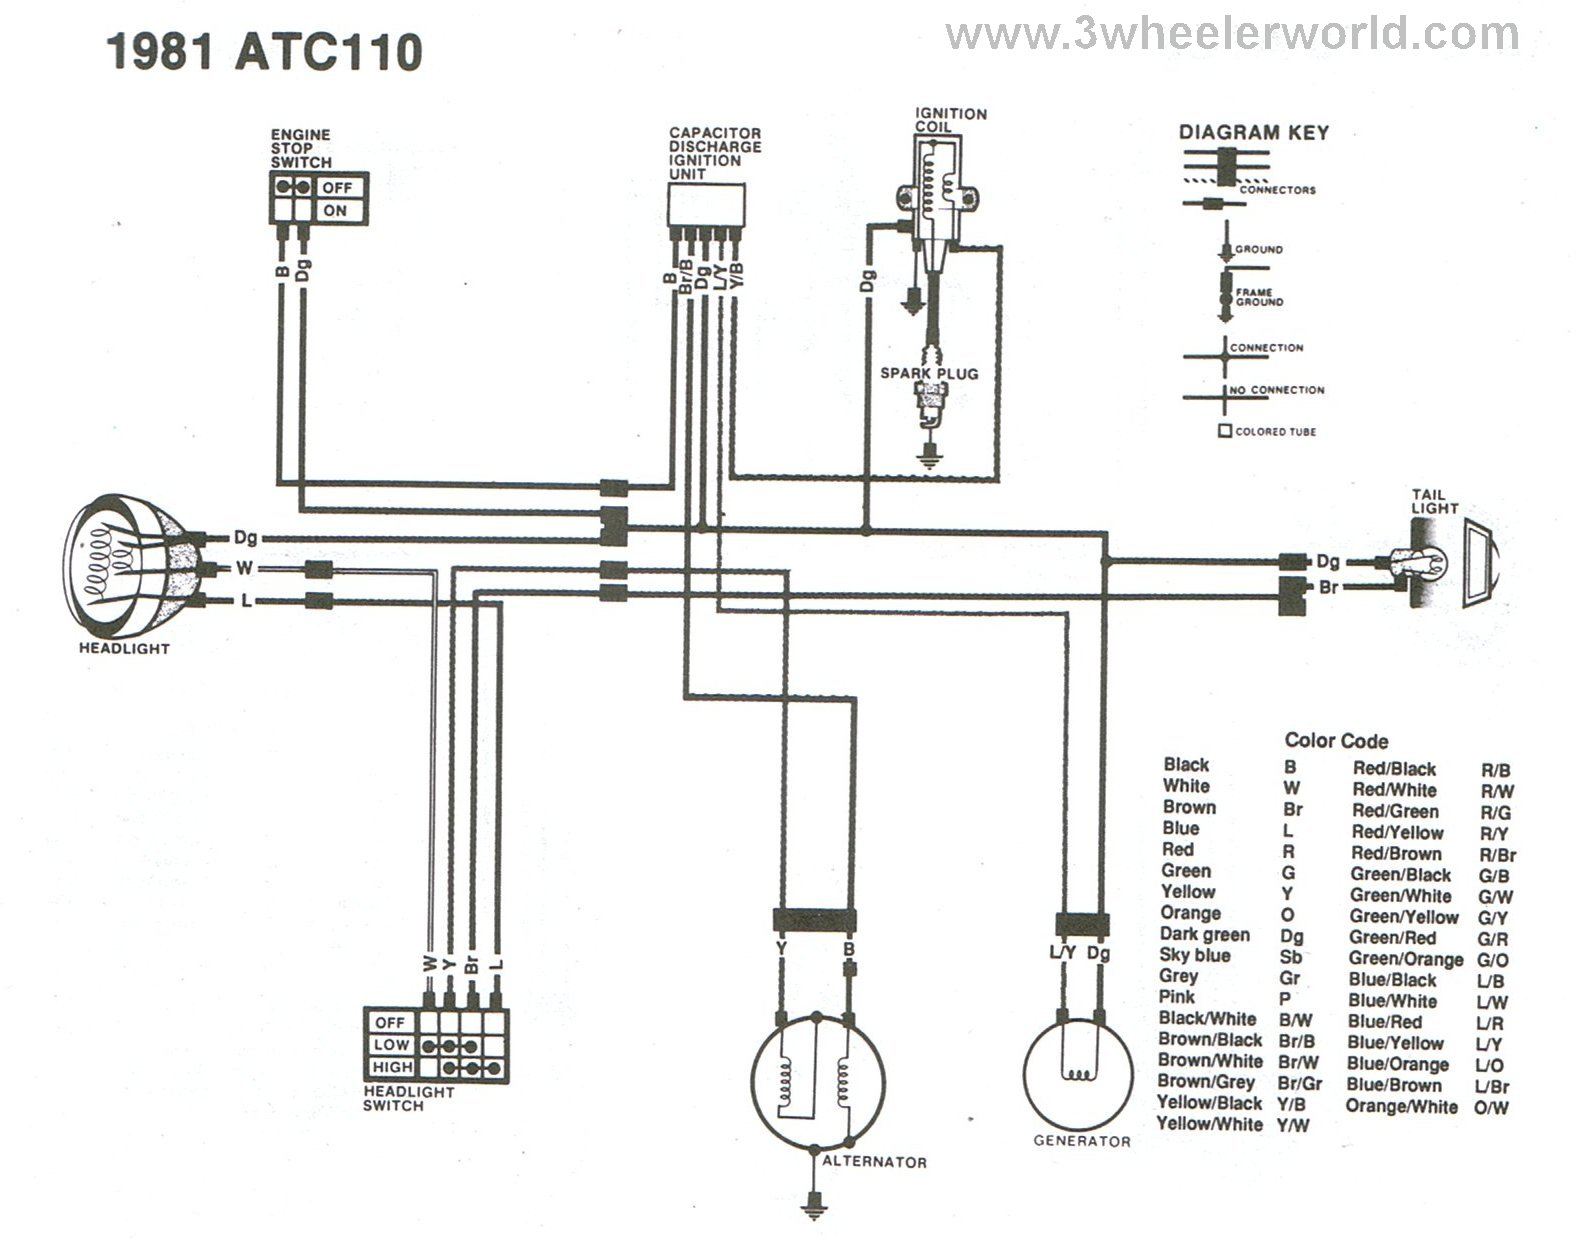 ATC110x81 3 wheeler world tech help honda wiring diagrams  at honlapkeszites.co